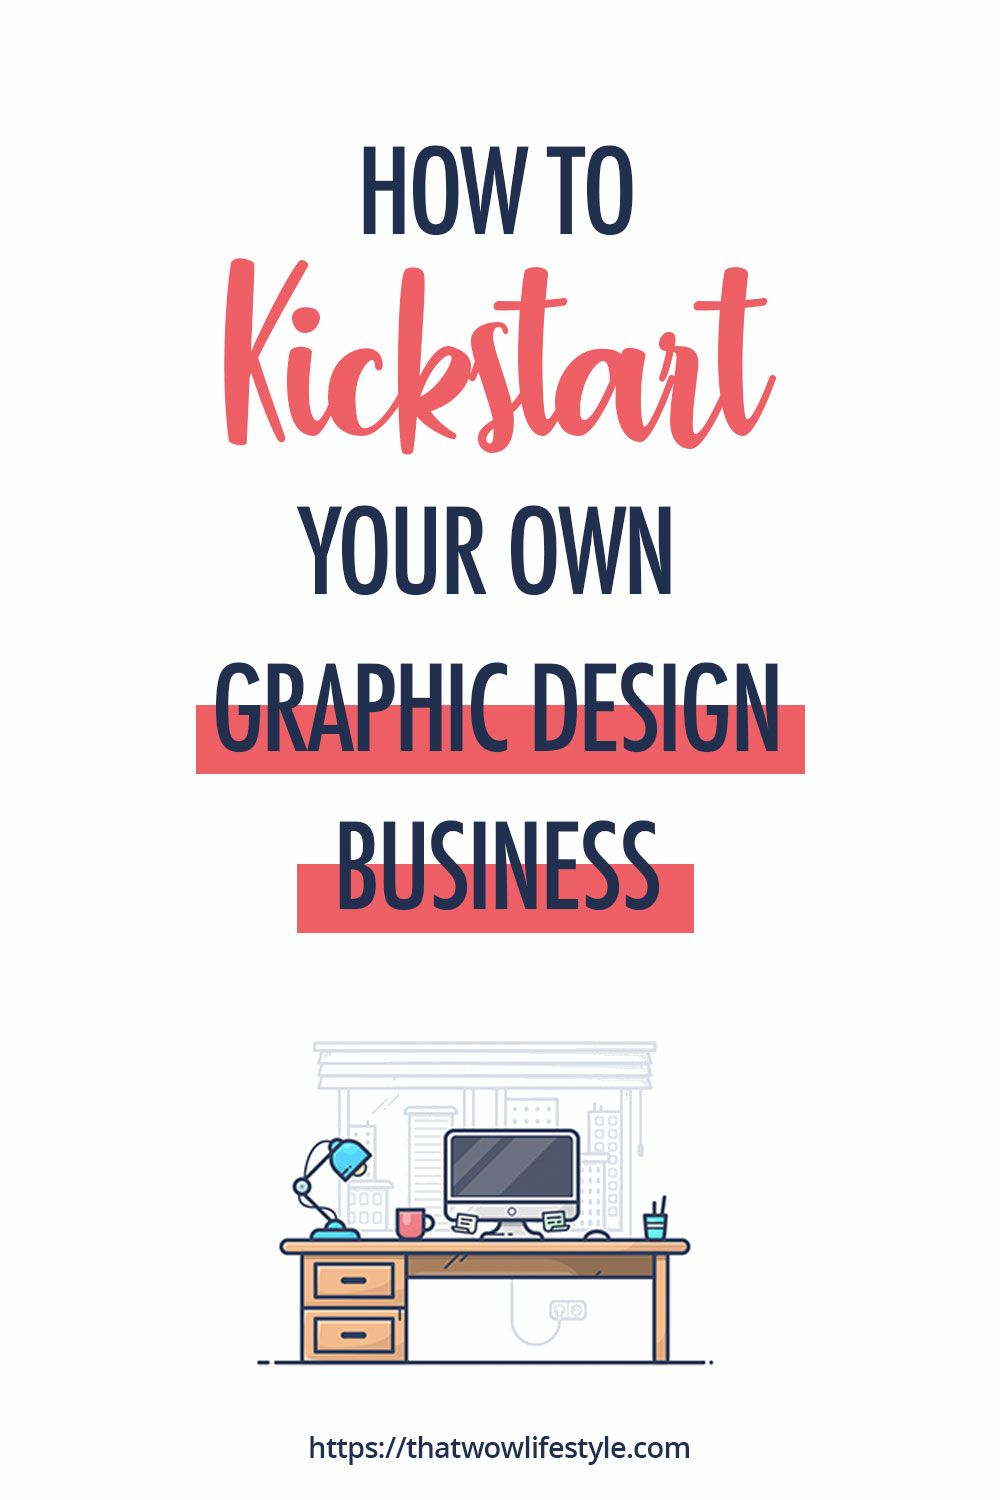 How To Start A Graphic Design Business - Quick Guide (2020)